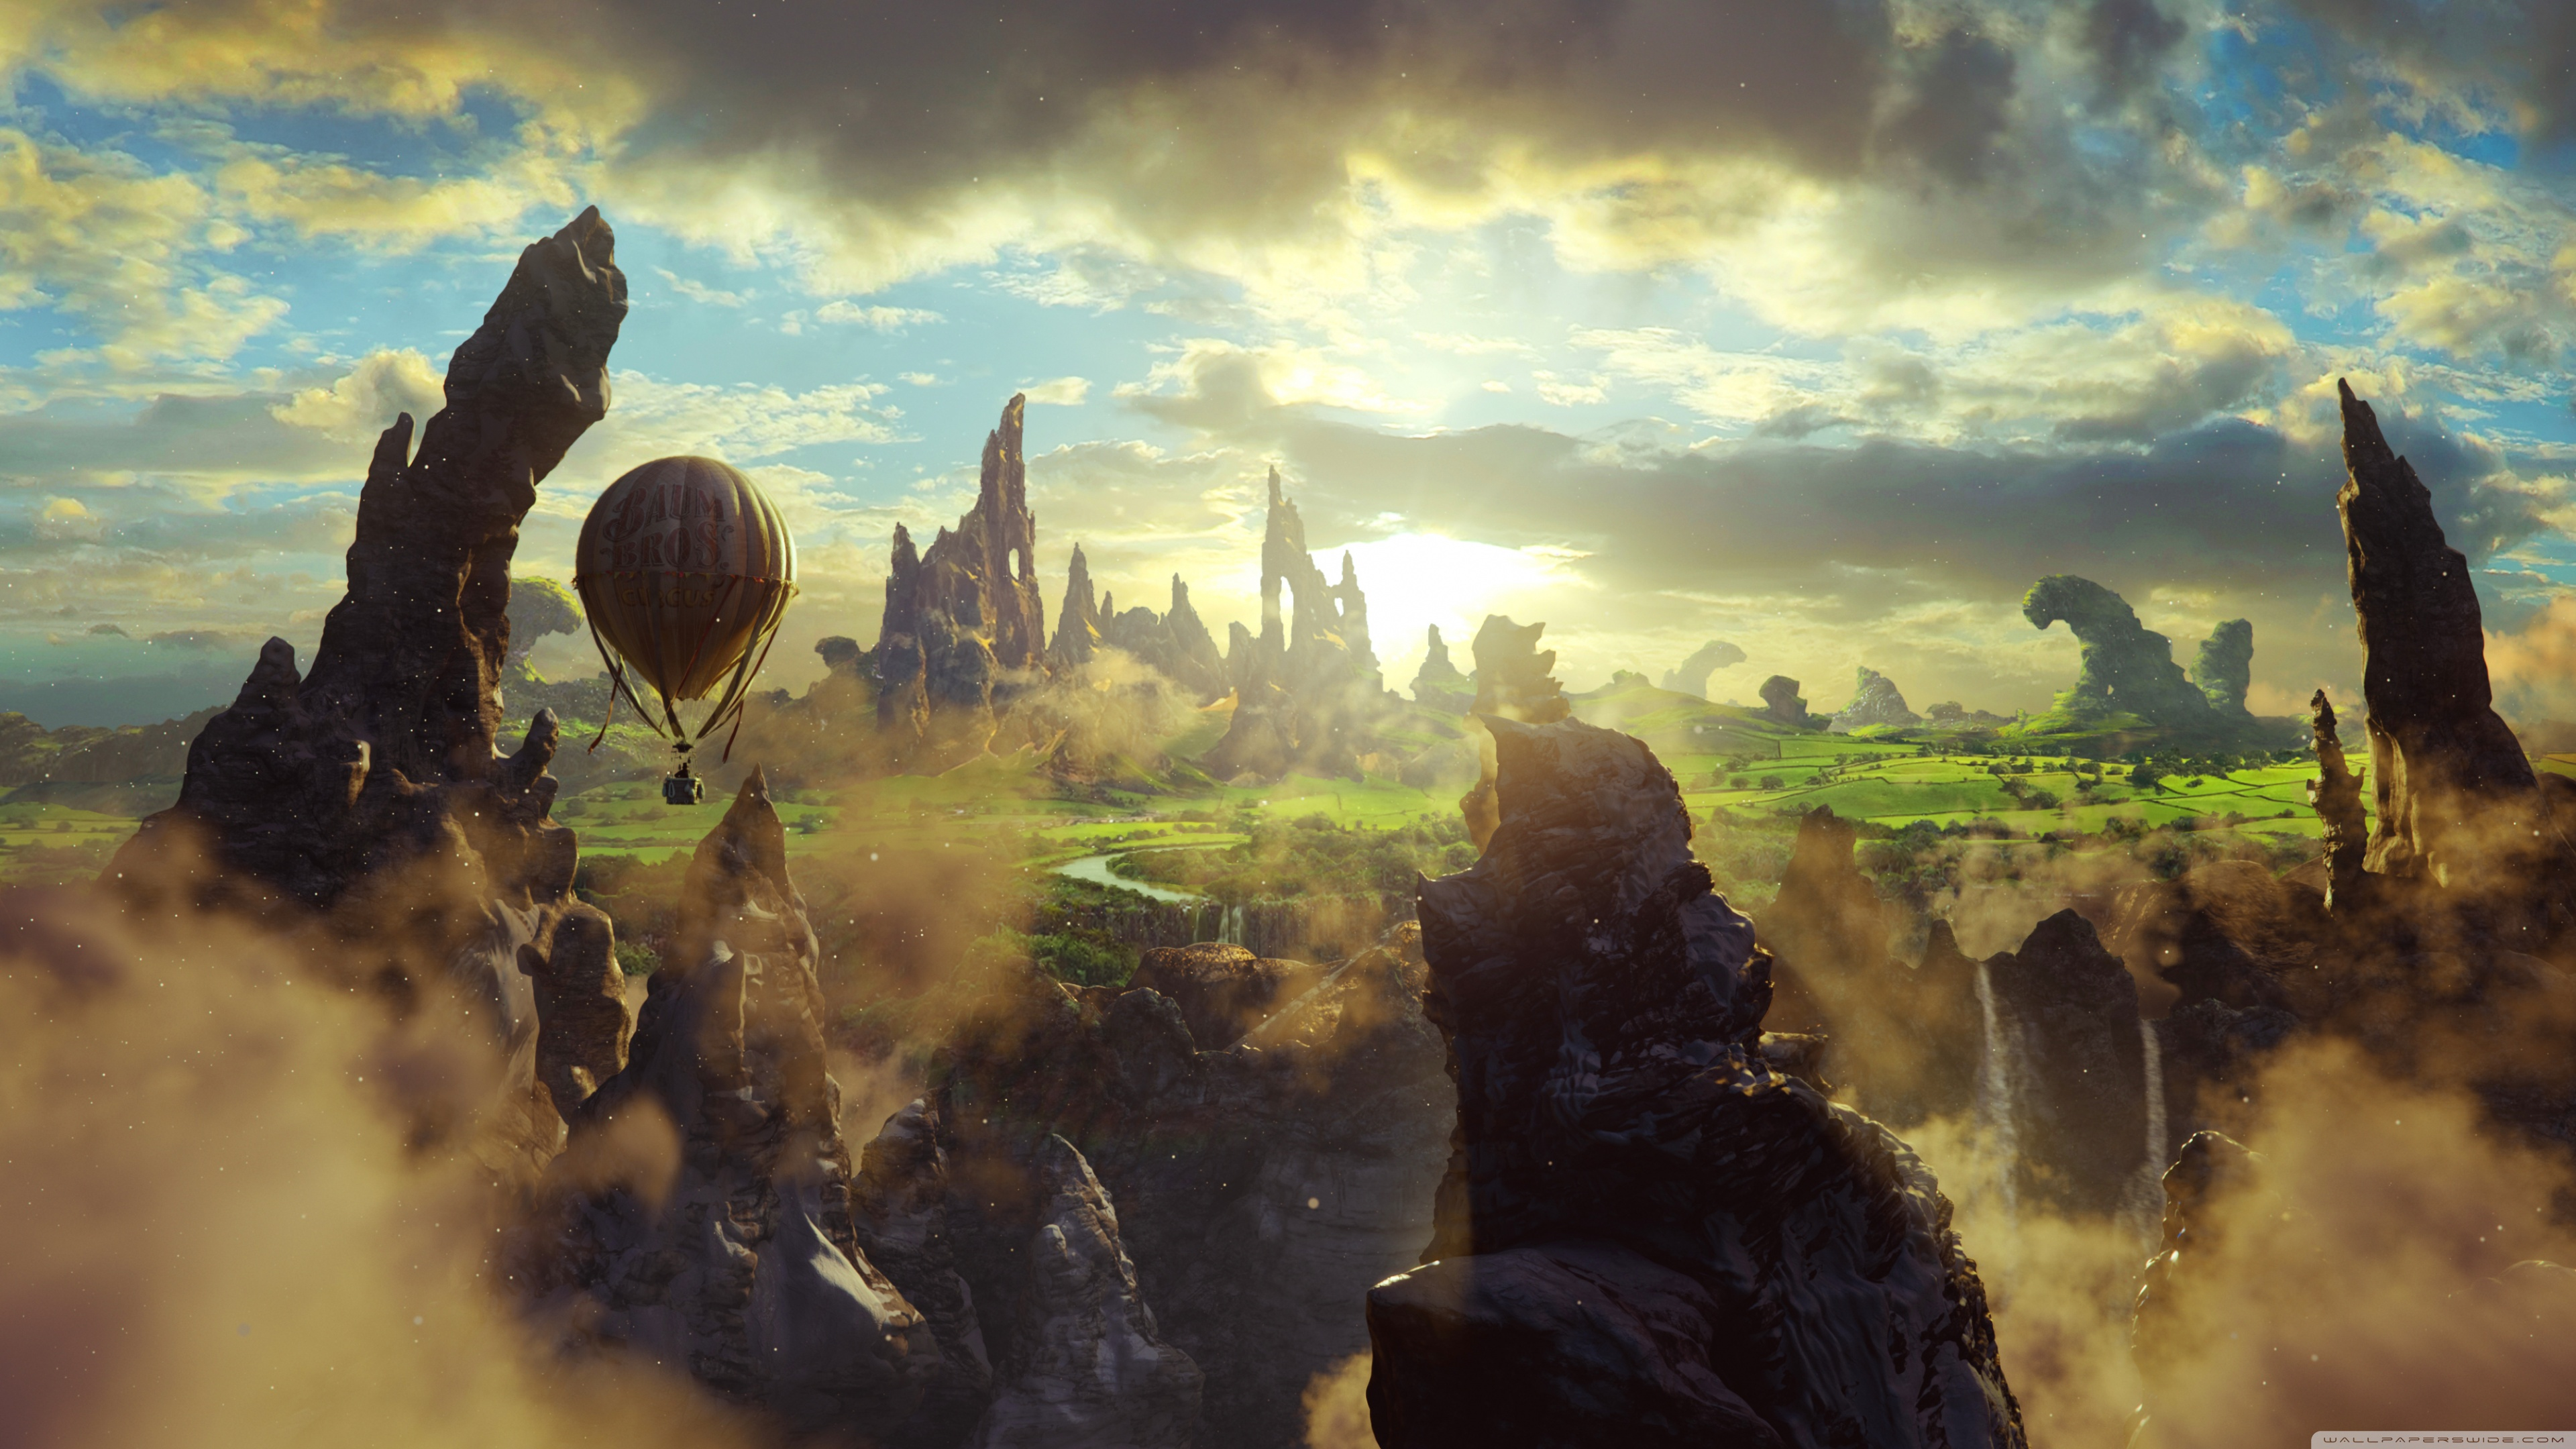 ... the Great and Powerful HD Wallpapers | Backgrounds - Wallpaper Abyss